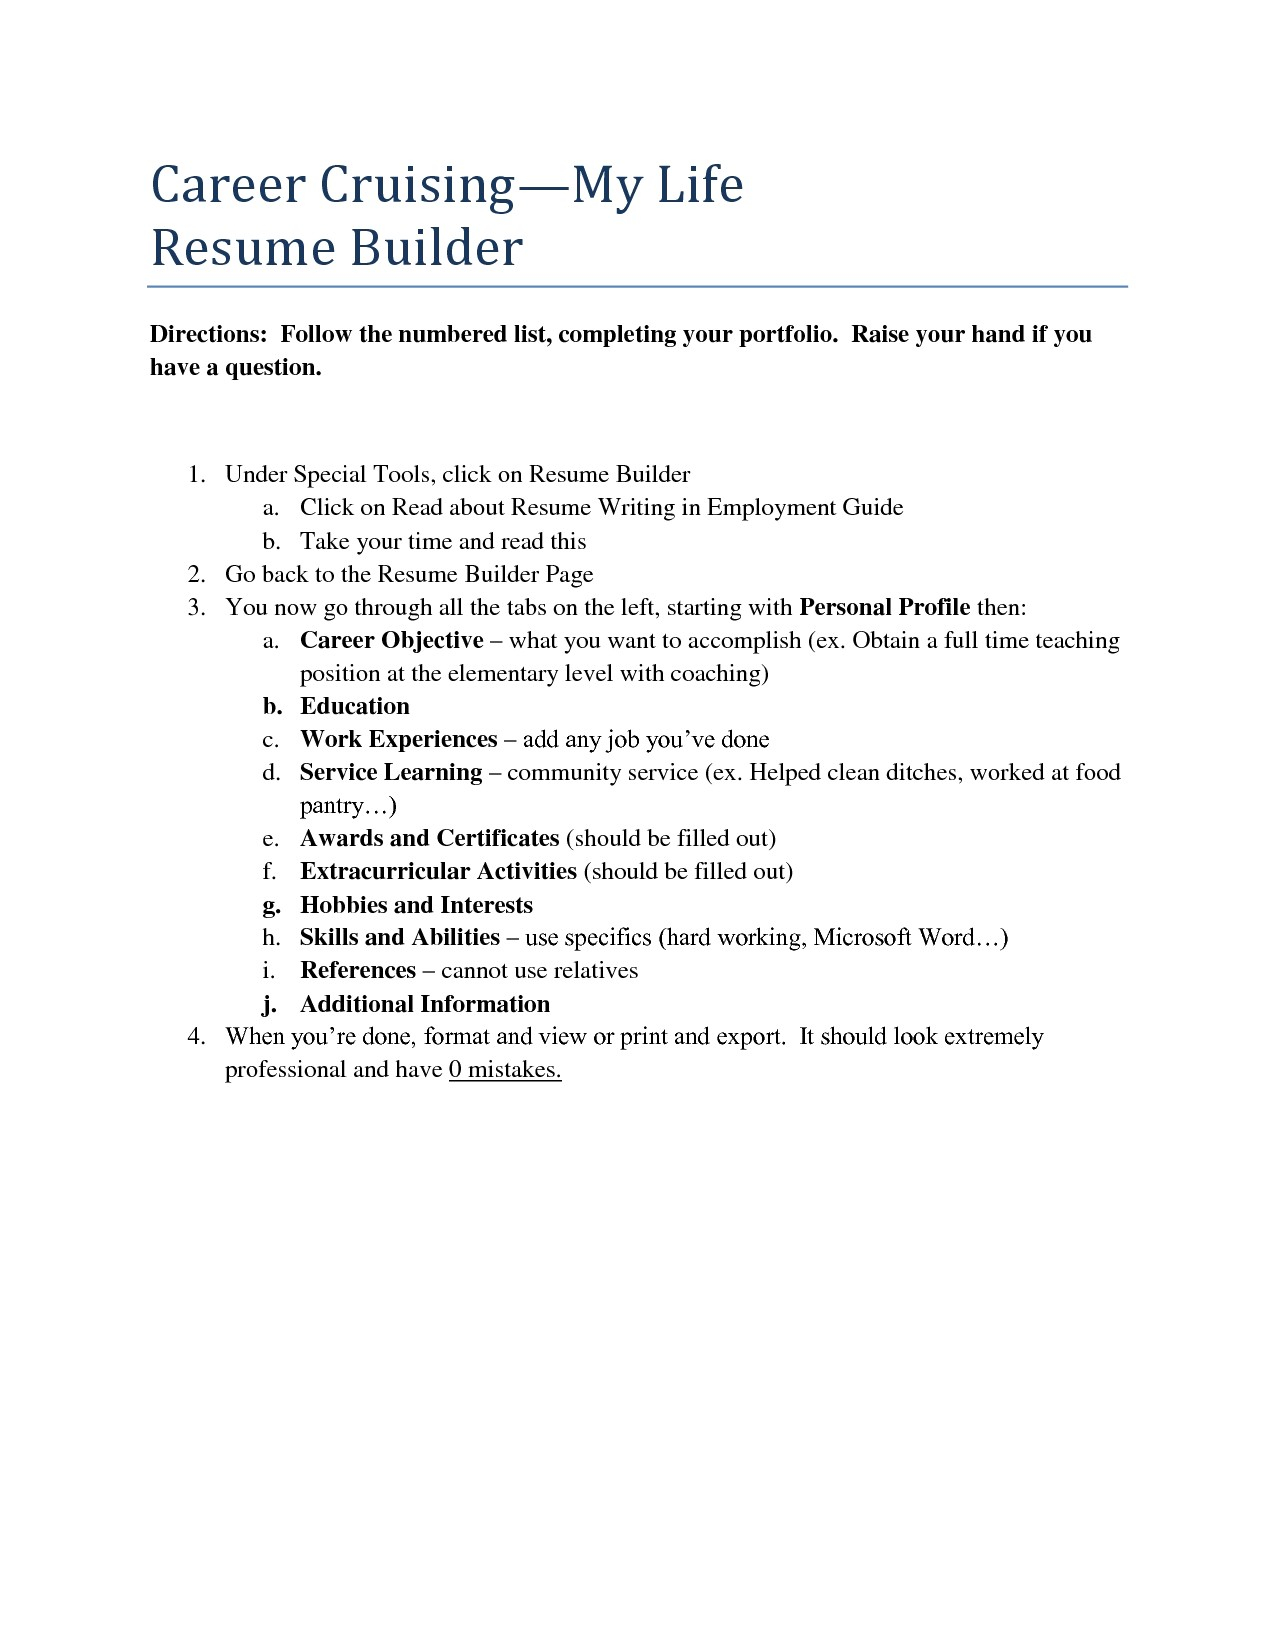 Career Cruising Resume Template - Career Builder Resume Templates Cmt sonabel